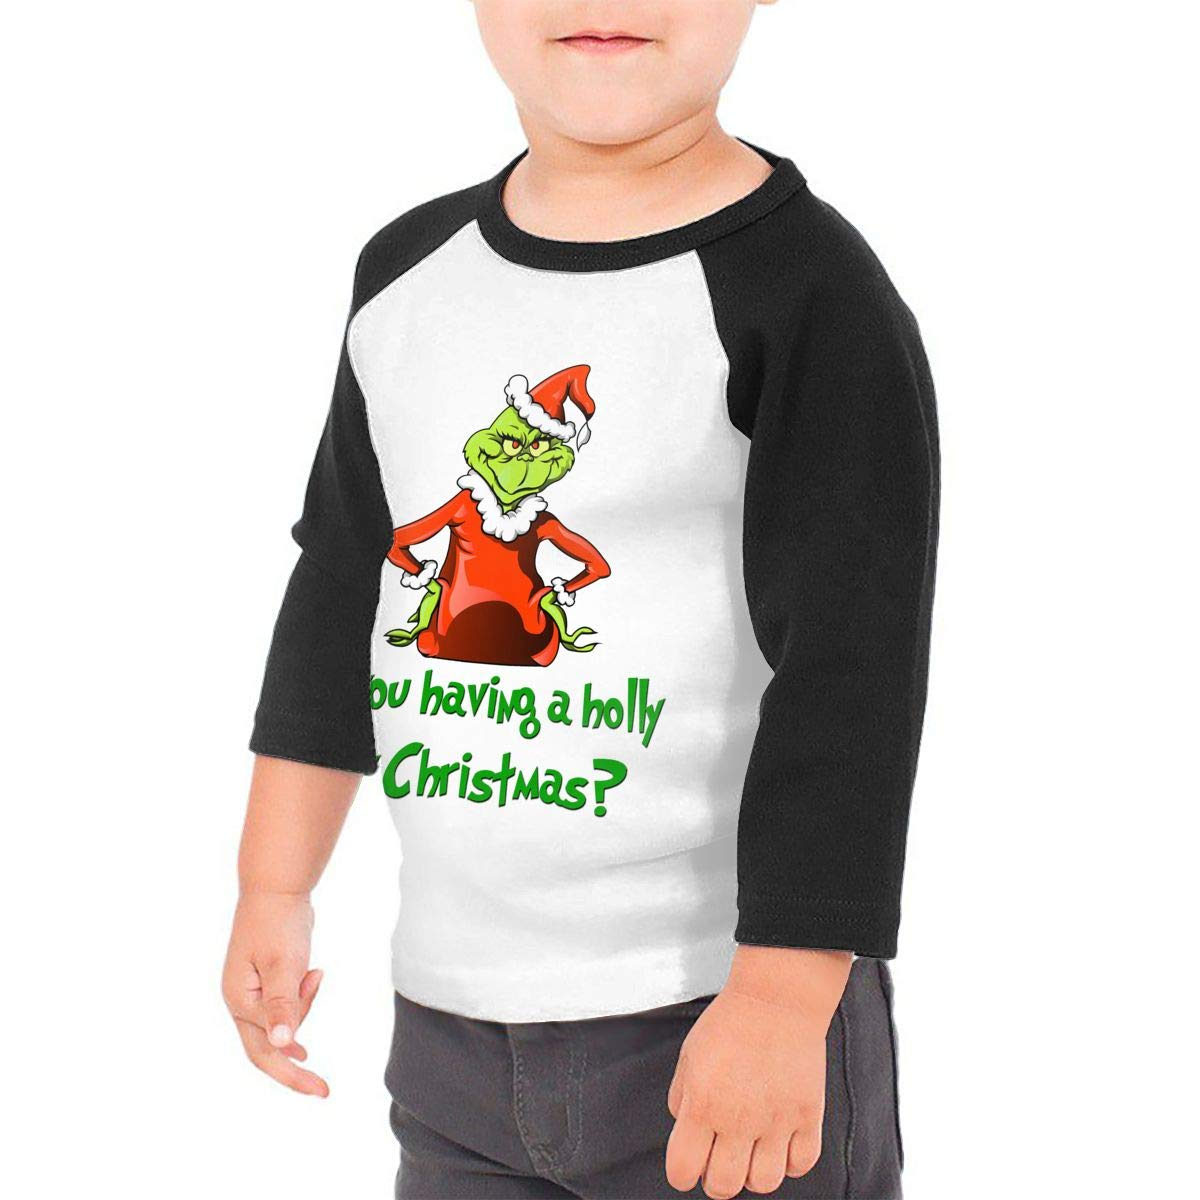 yimo Powered by Plants Vegan 3D Printing Unisex Toddler Baseball Jersey Contrast 3//4 Sleeves Tee